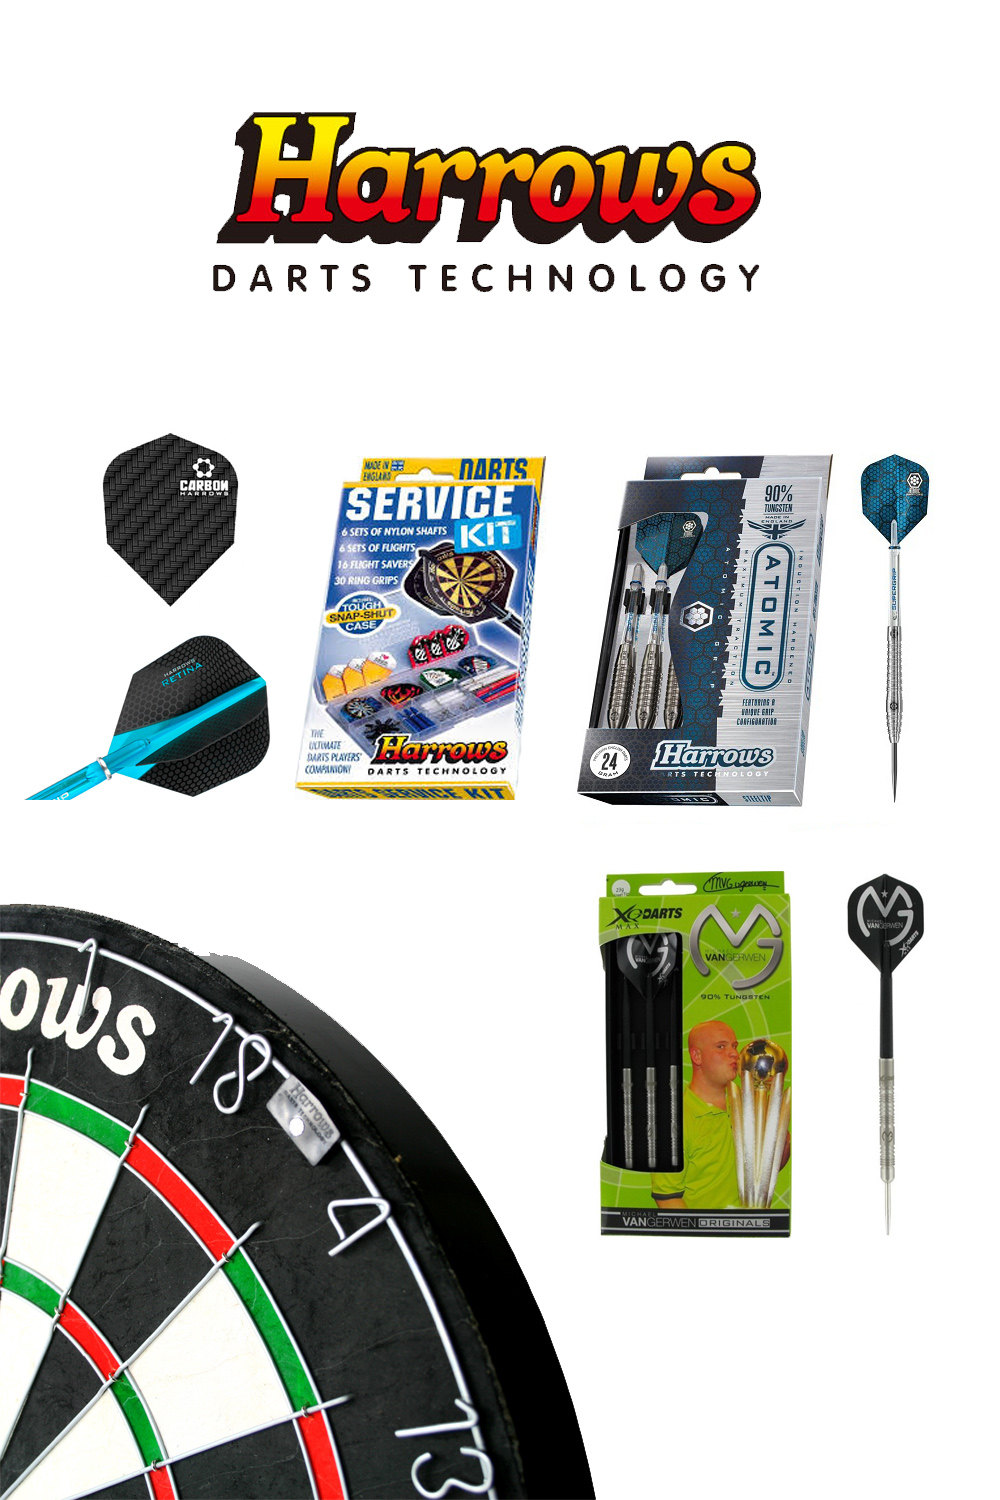 Harrows darts